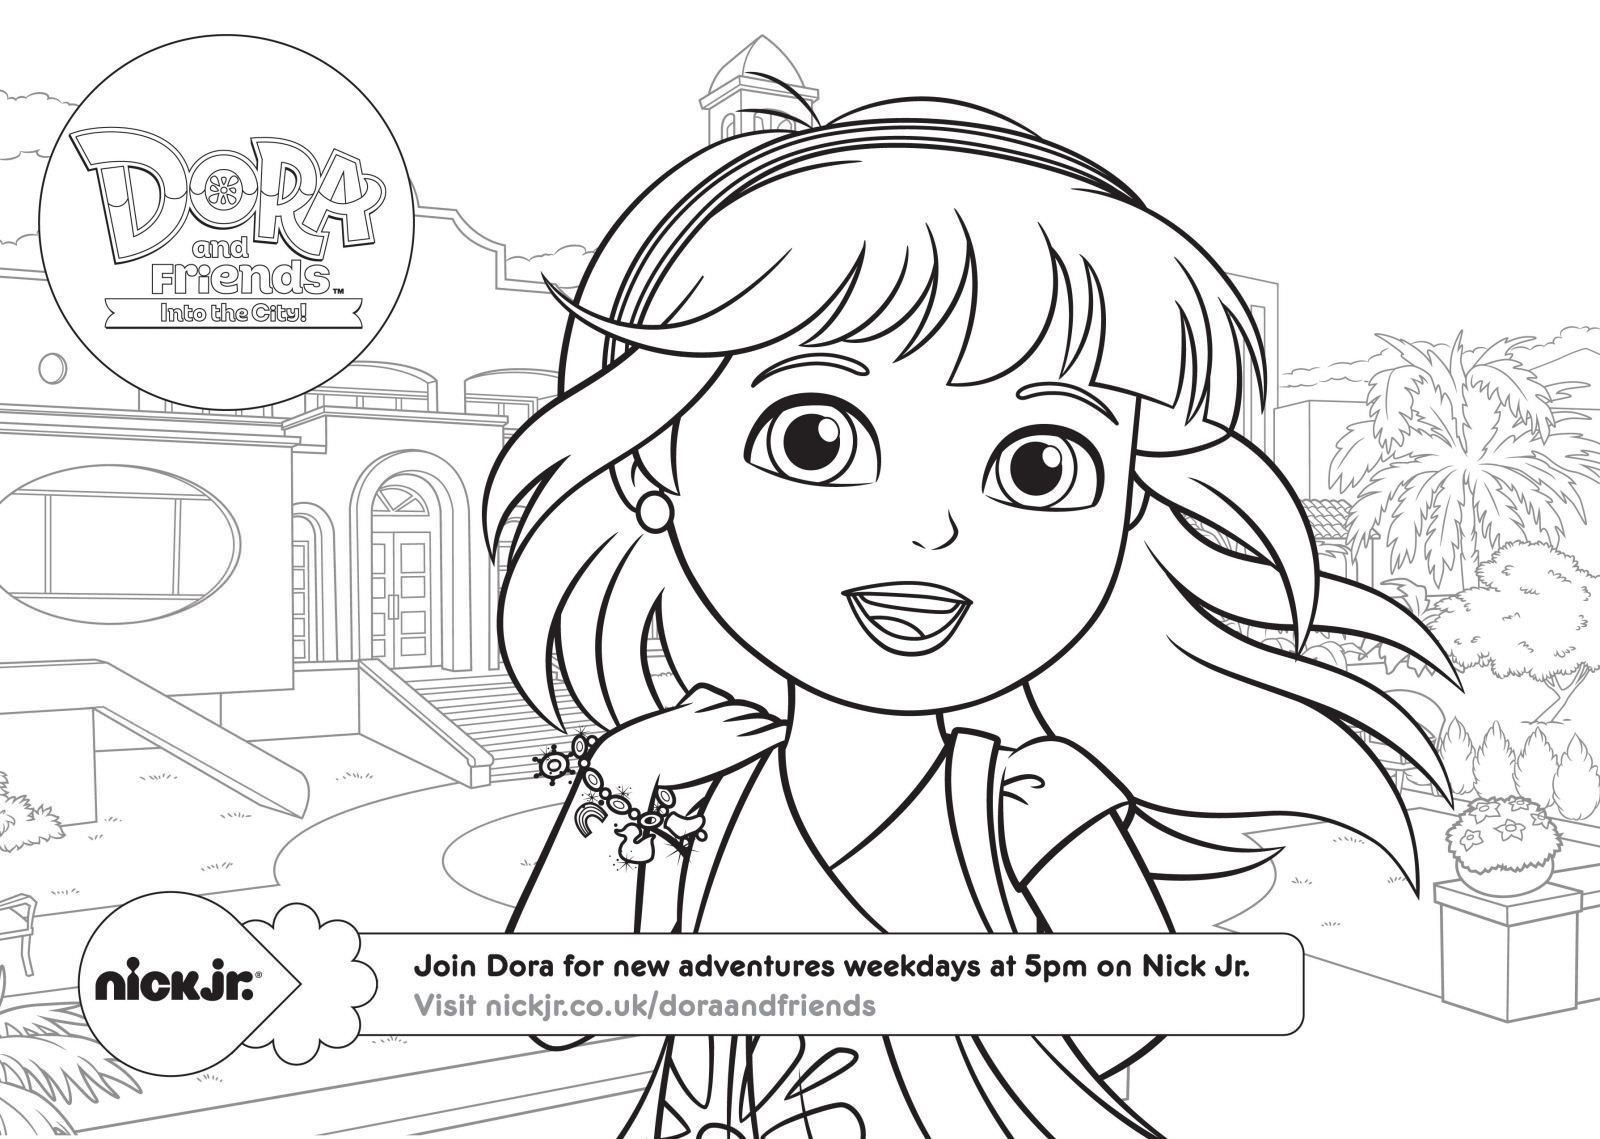 Dora Into The City Coloring Pages Dora And Friends Into The City Coloring Pages Dora In The City Color Dora And Friends Coloring Pages Mermaid Coloring Pages